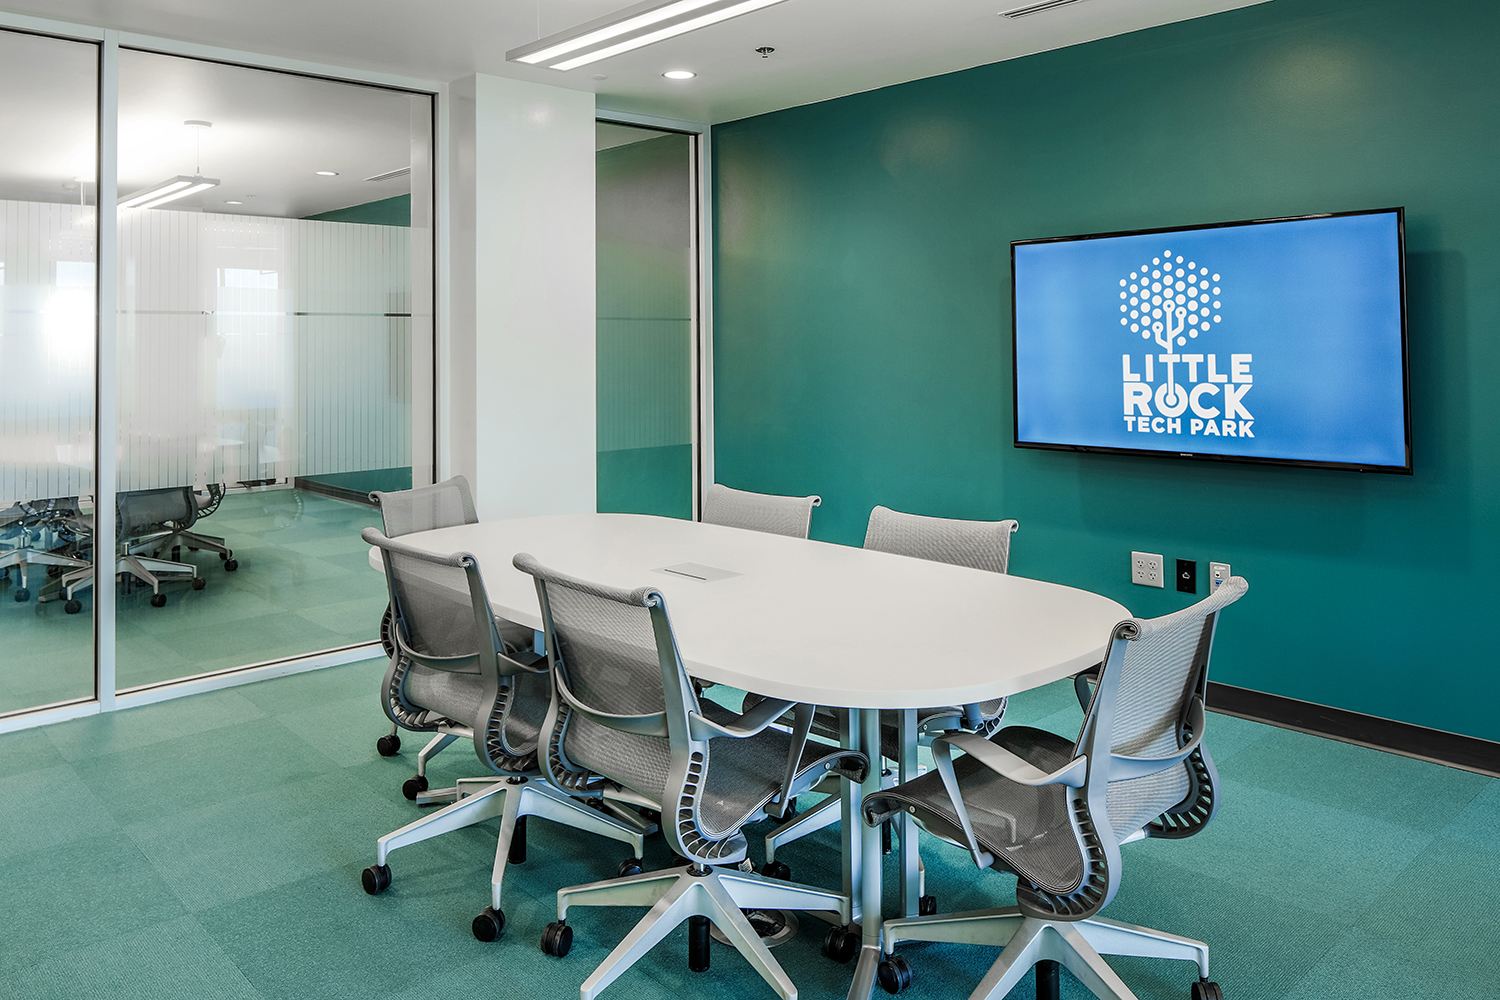 Interiors_Design_Commercial_3.JPG